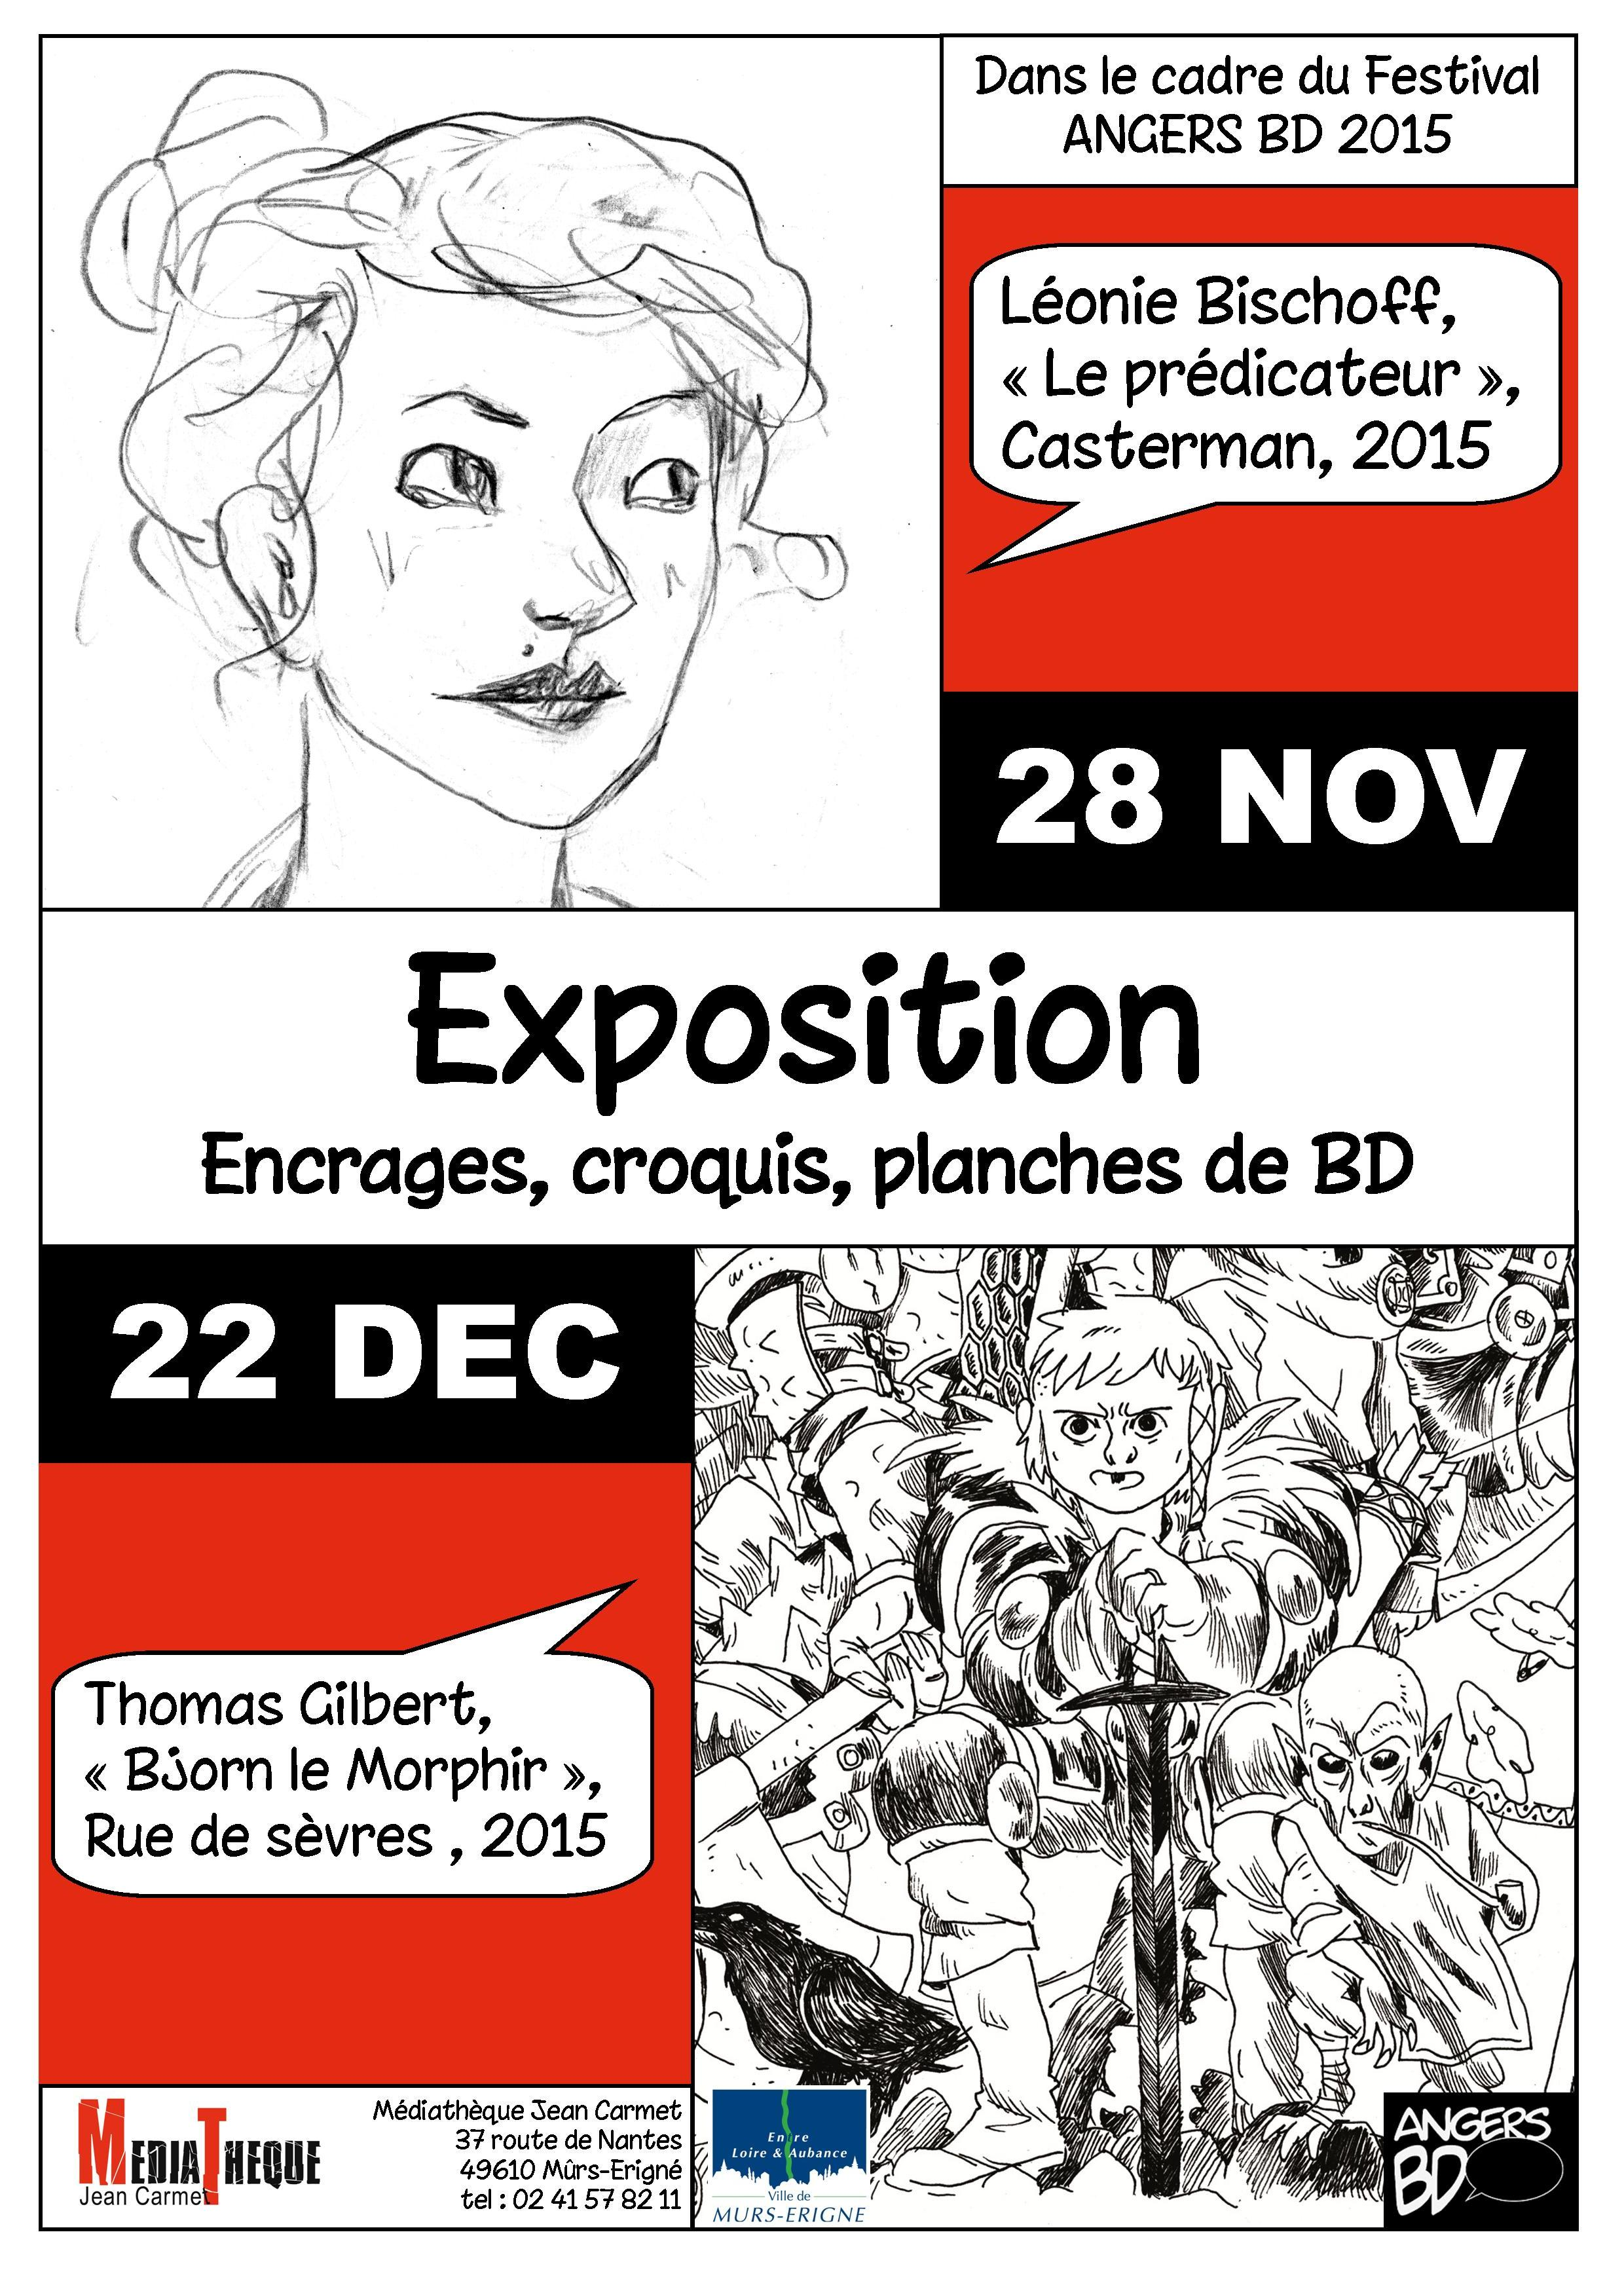 Affiche angers BD 2015